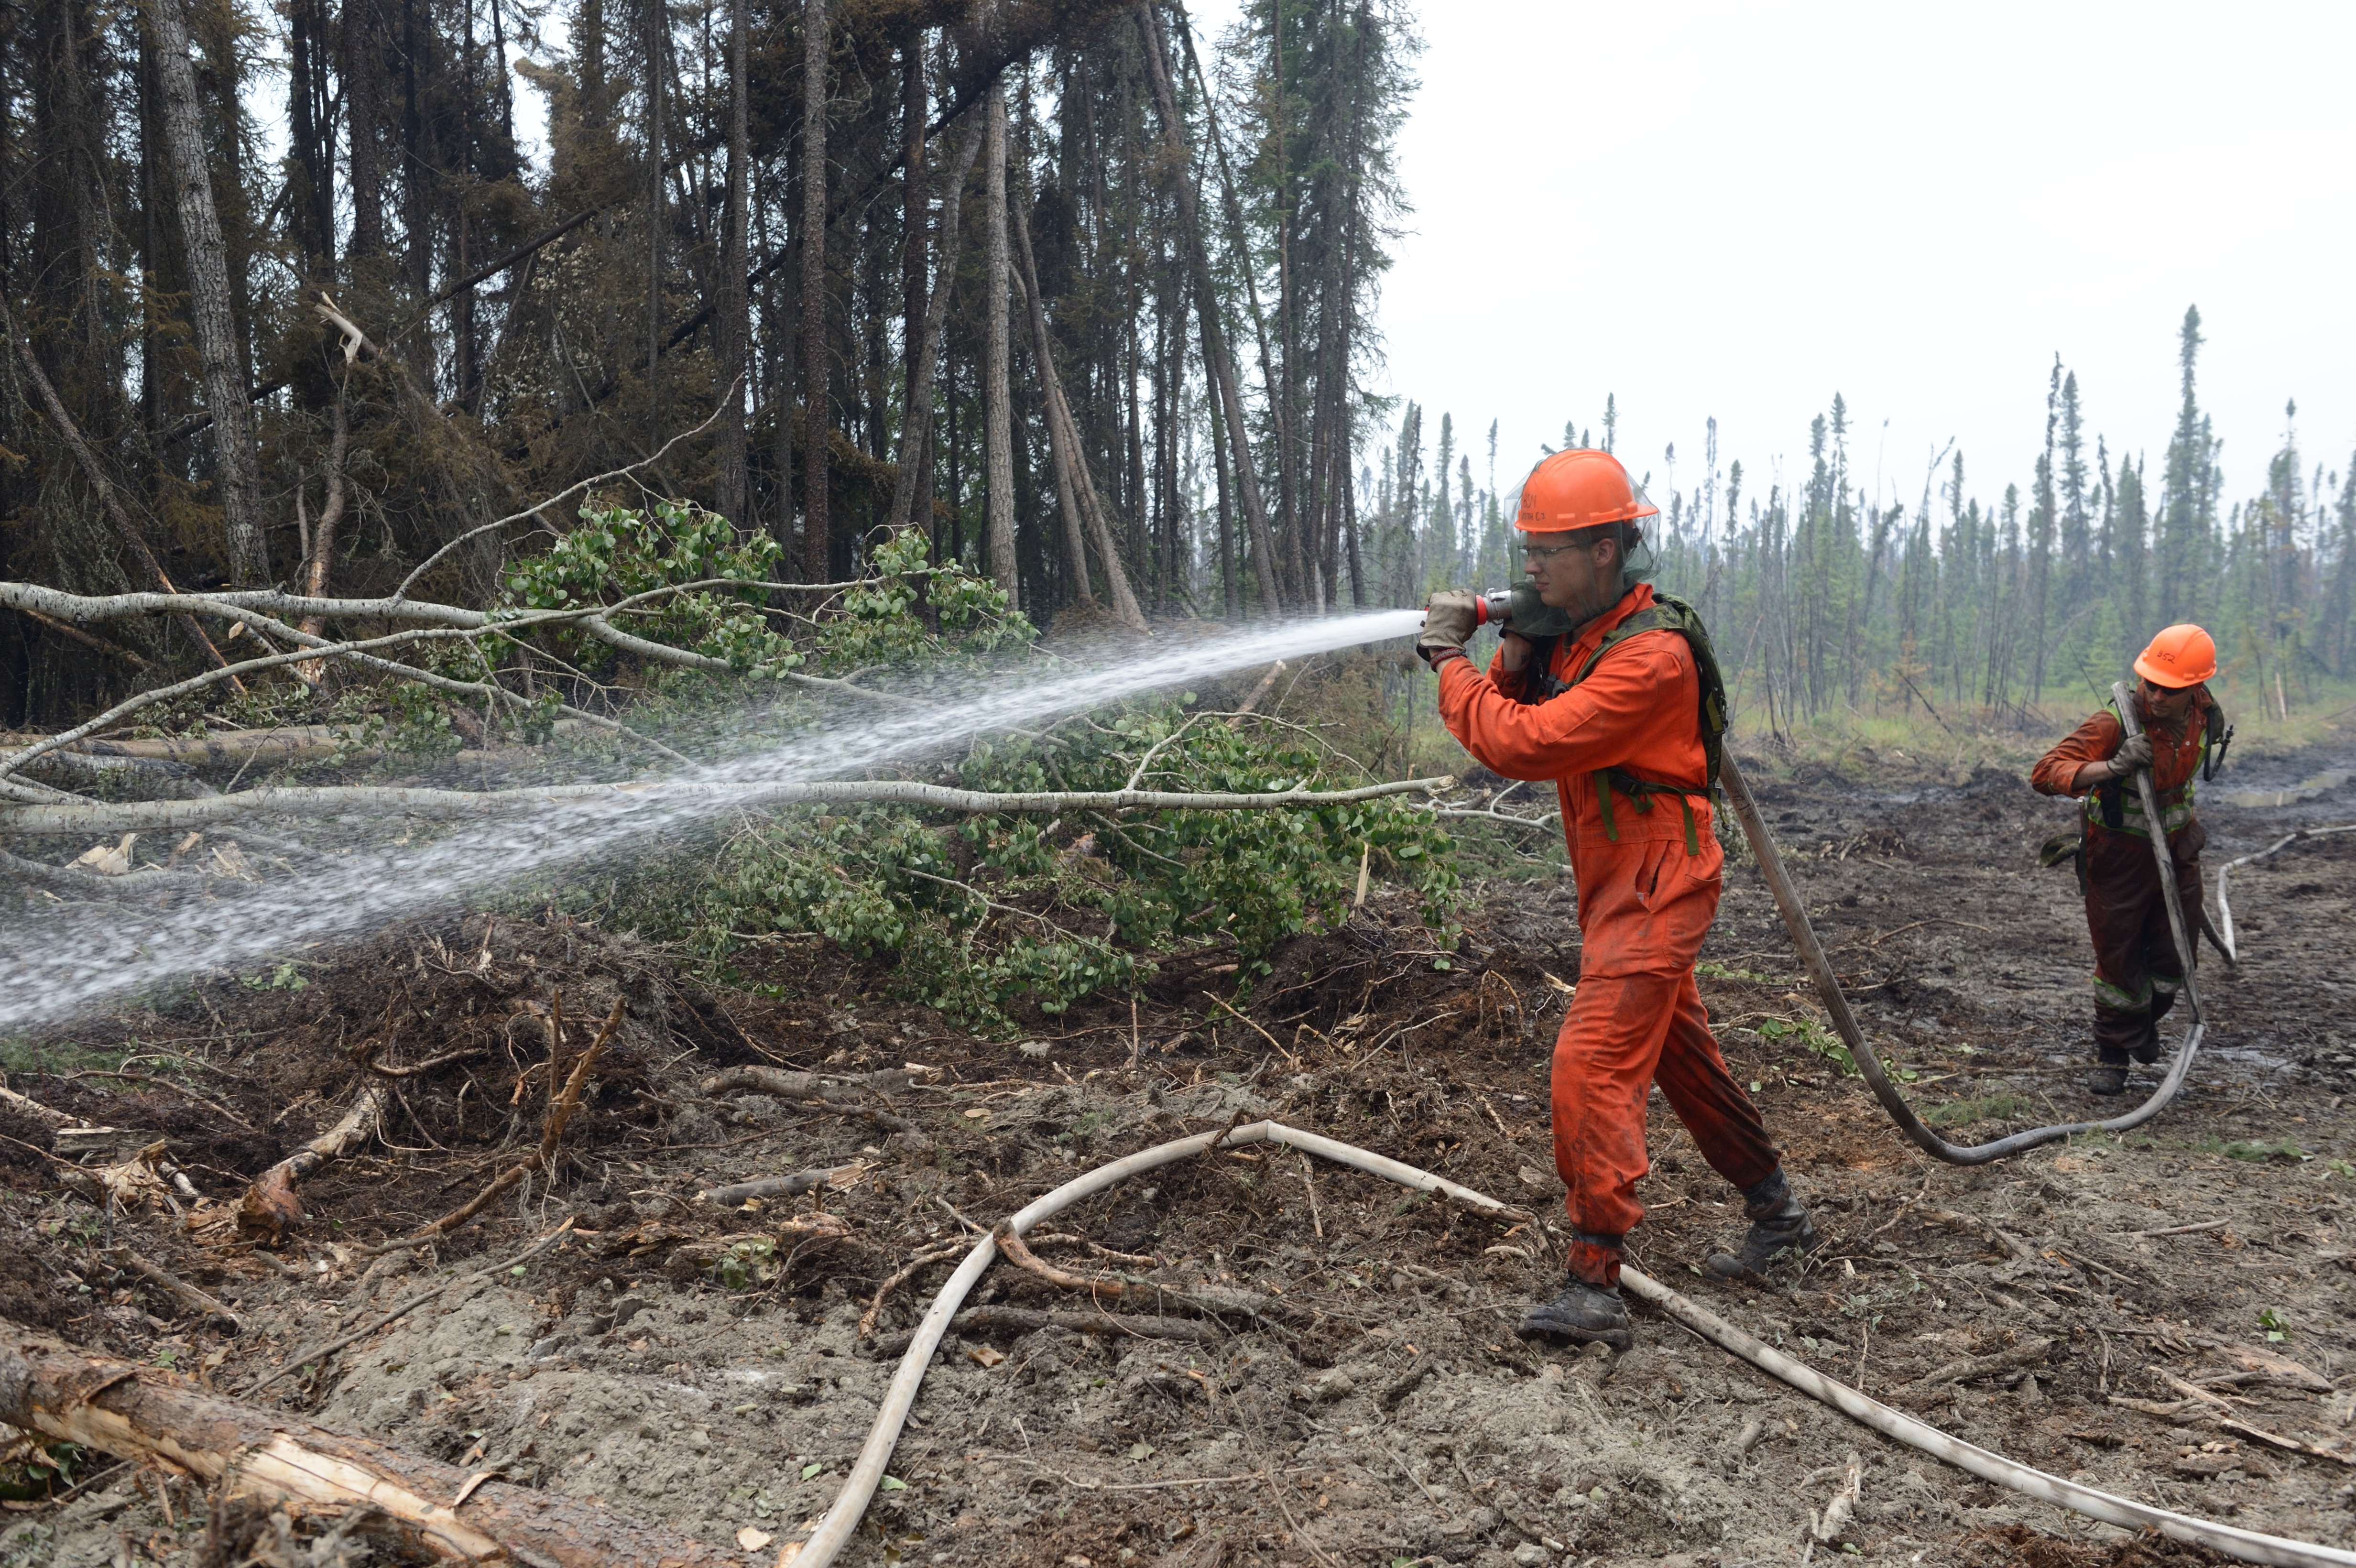 Two Canadian Army Reserve soldiers dress in orange coveralls are pulling a fire hose through a burned out forest, aiming a stream of water from the hose at the ground to extinguish hot spots.